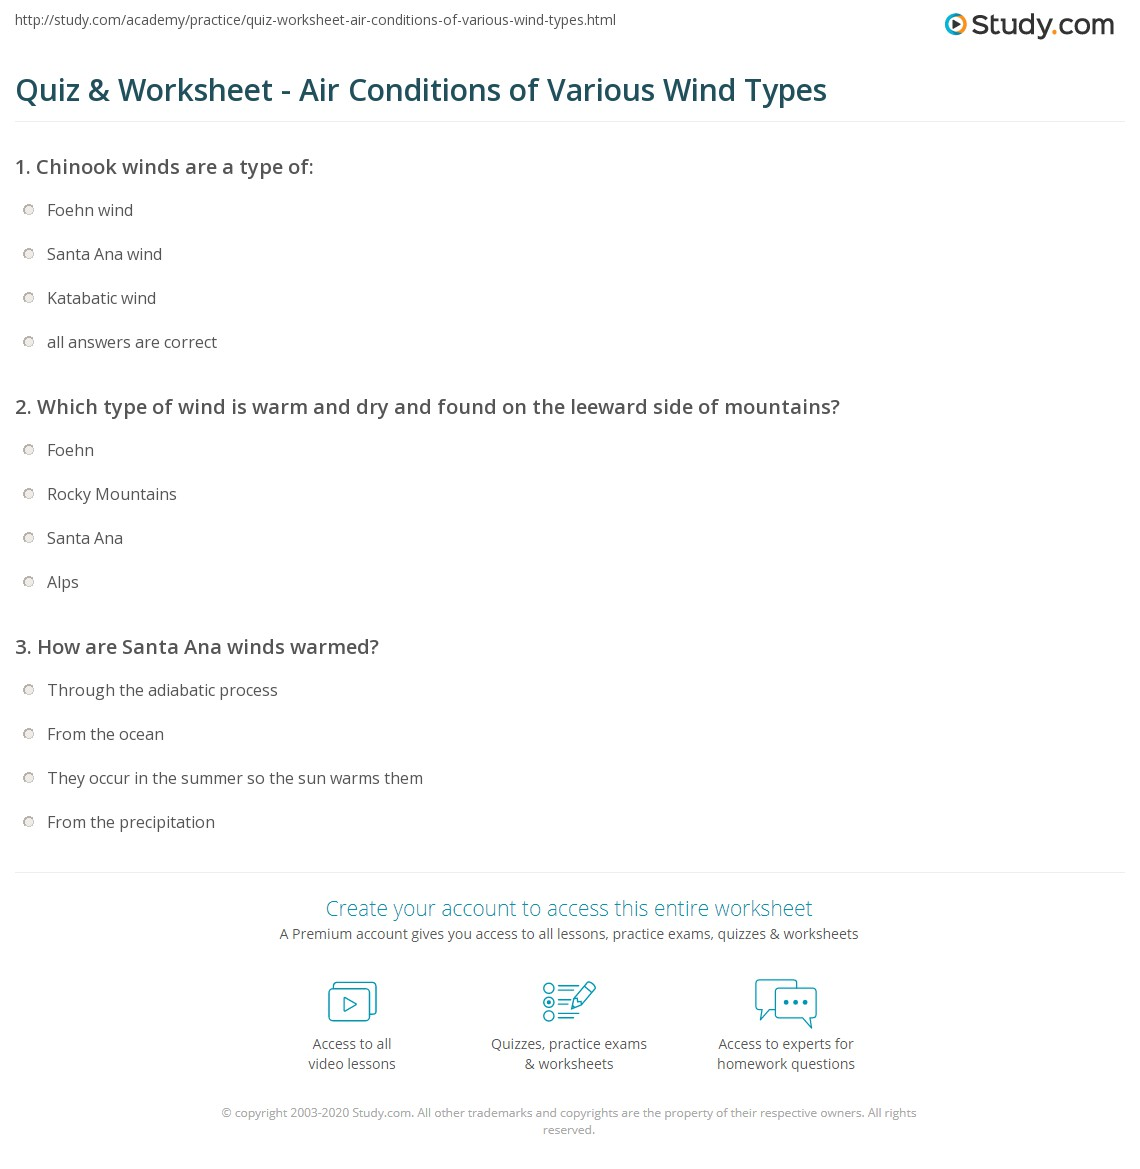 Quiz & Worksheet - Air Conditions of Various Wind Types | Study.com